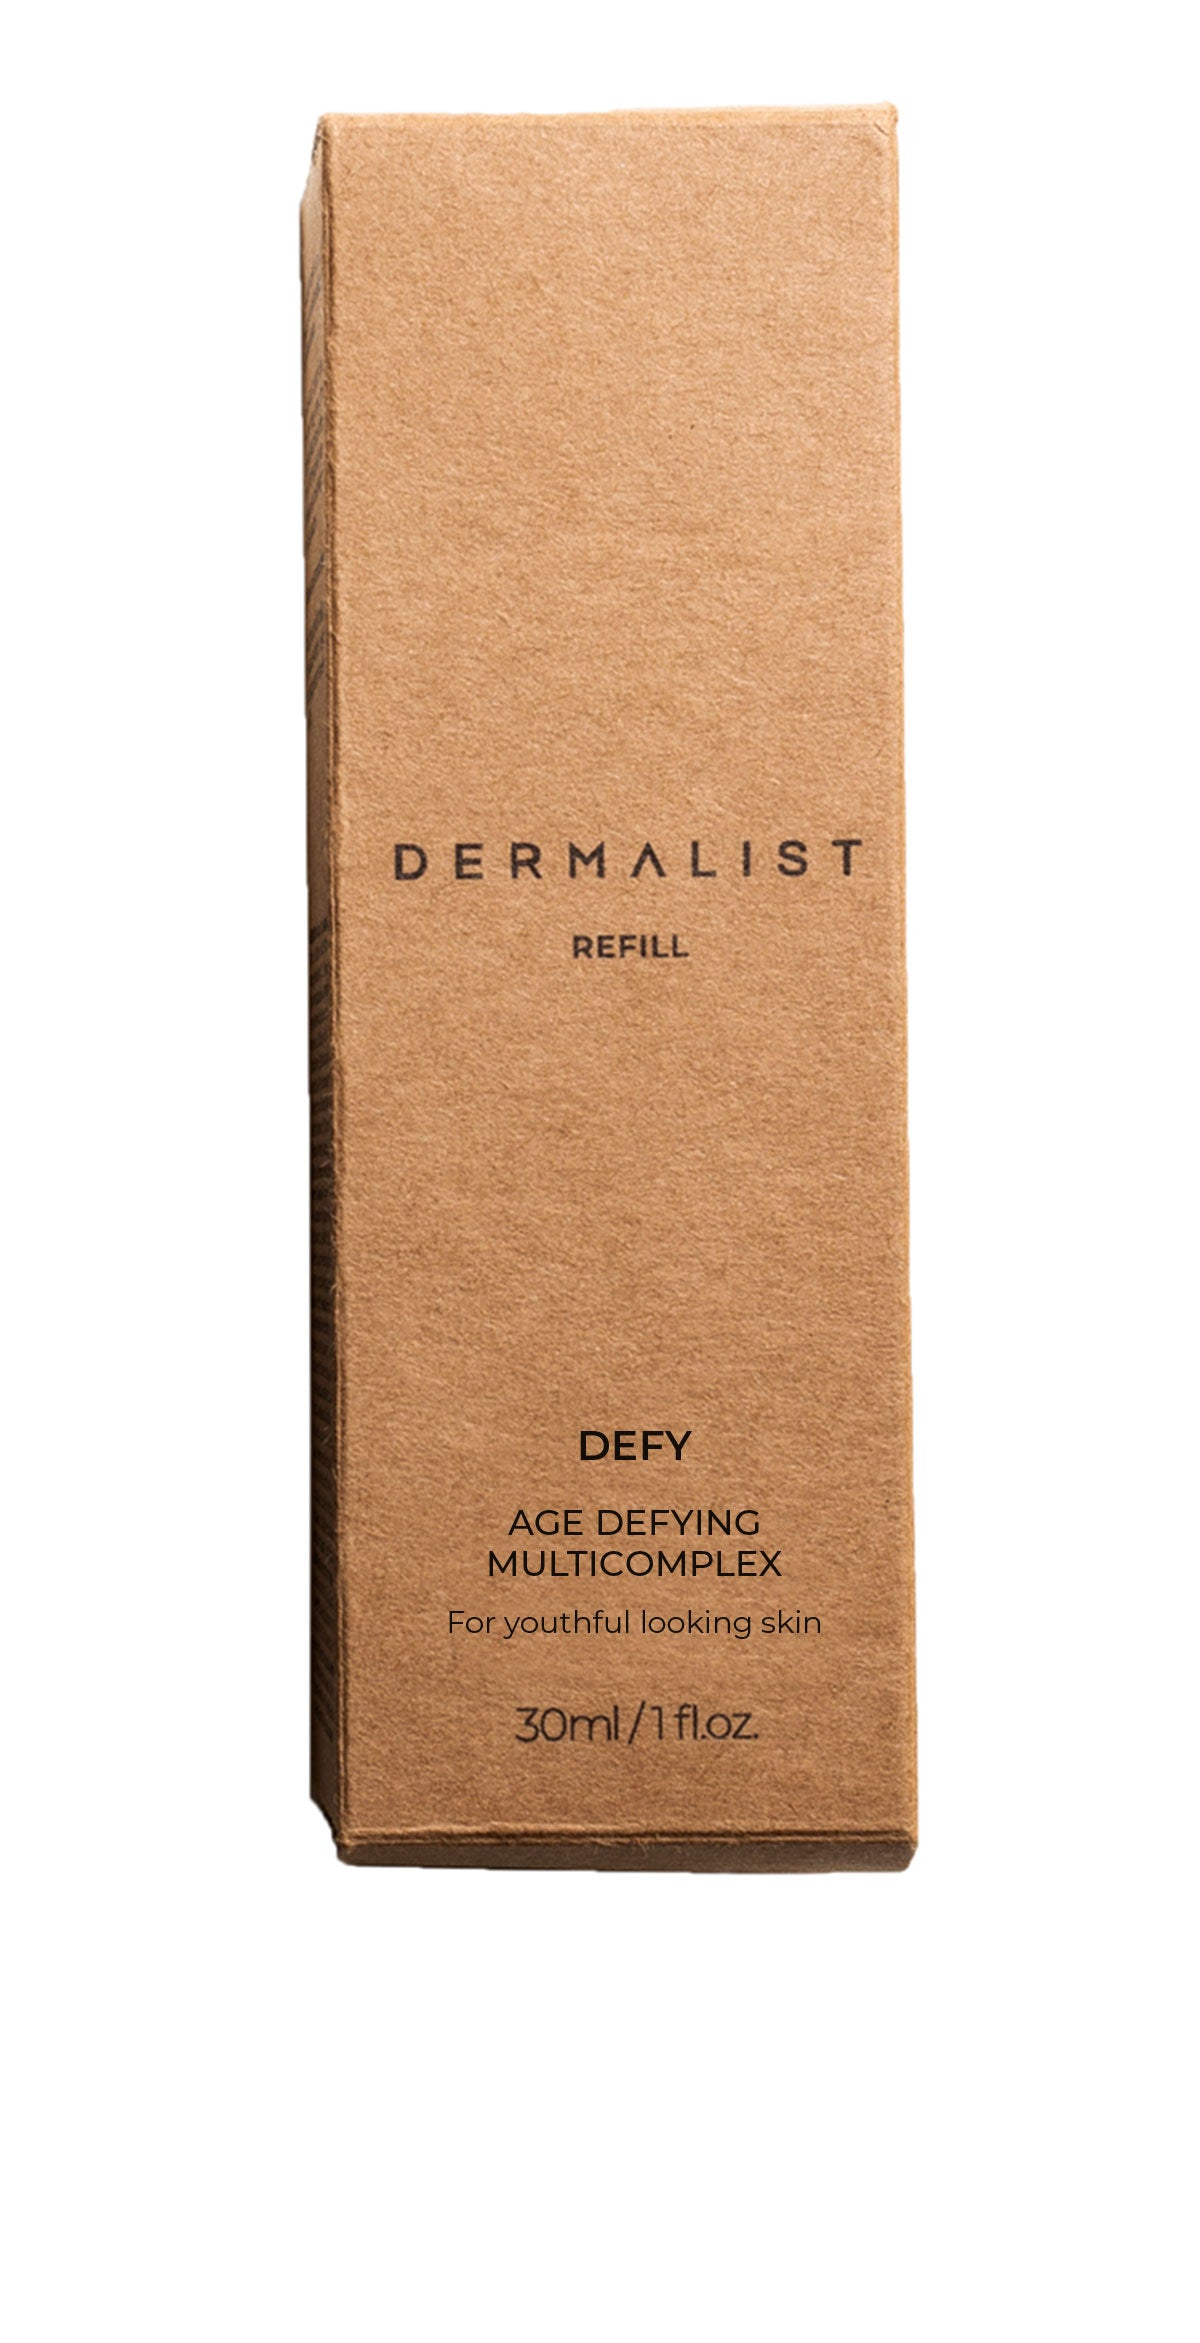 Age Defying MultiComplex Refill (30ml)